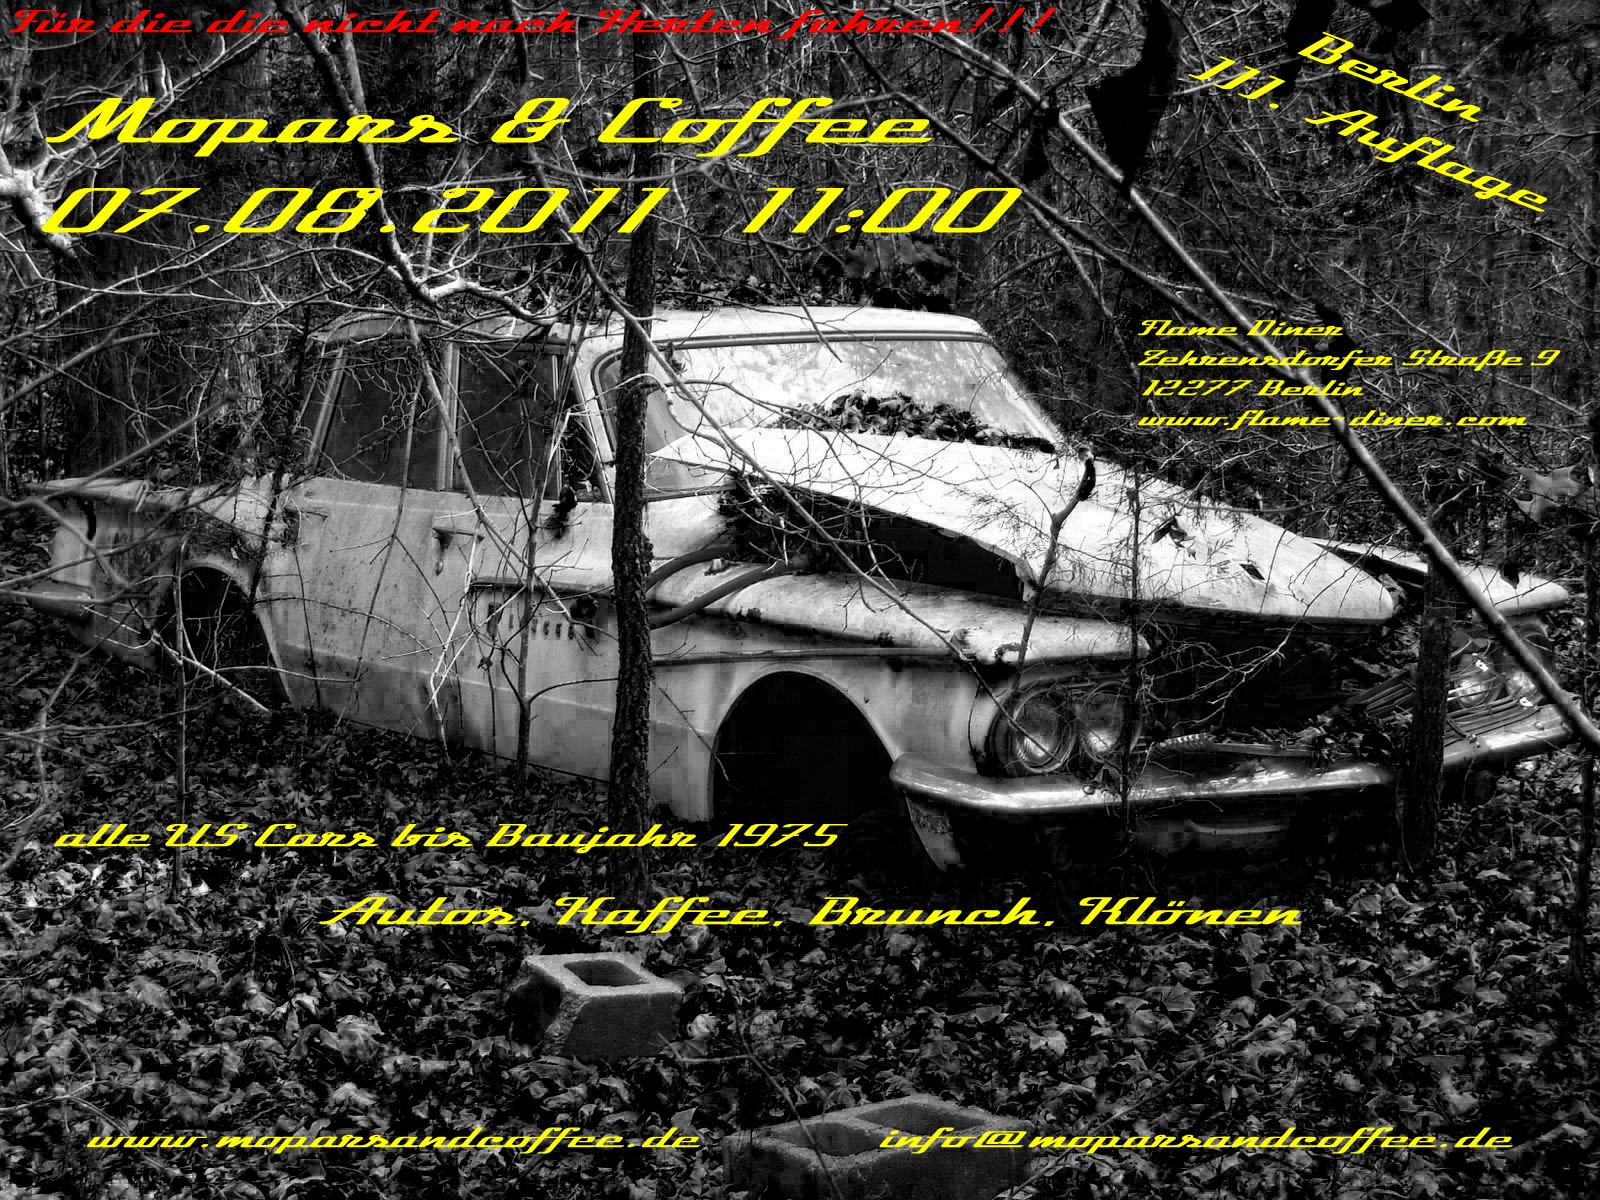 Mopars & Coffee Berlin III.Auflage 07.08.2011